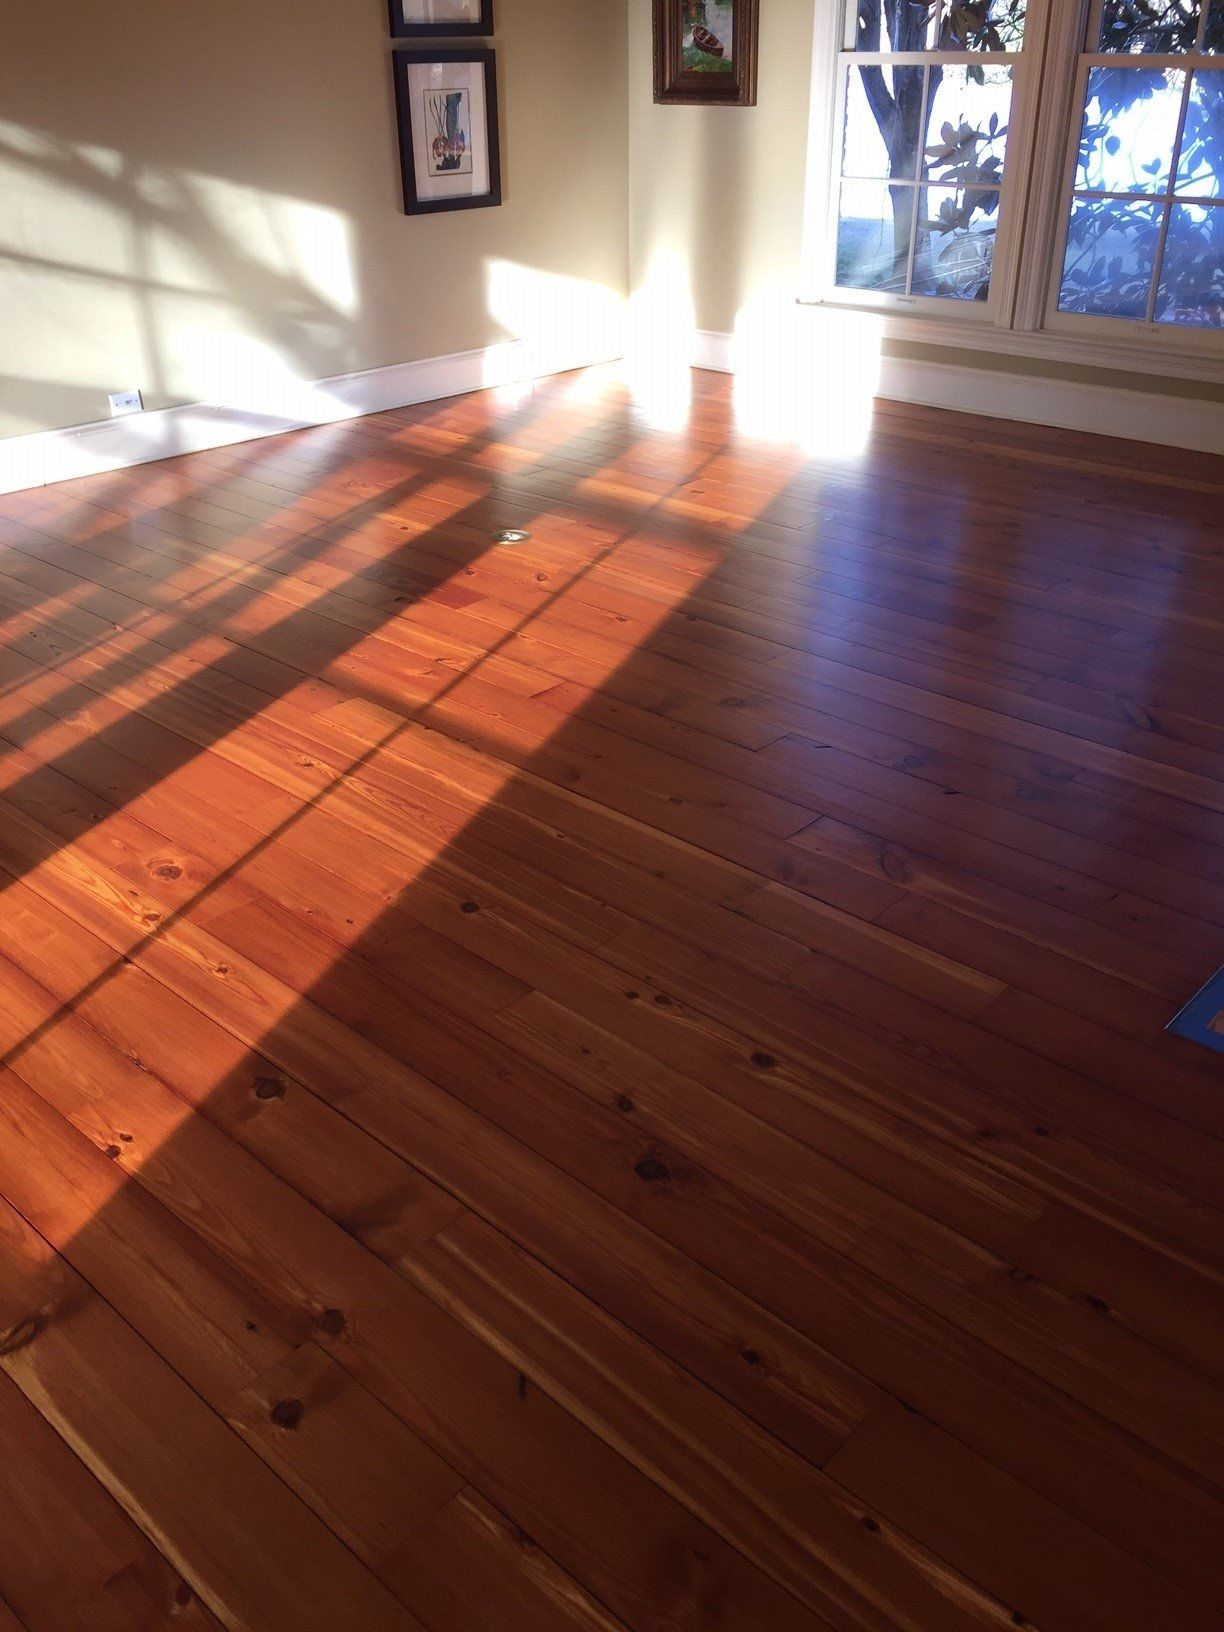 Daniel hardwood floors jackson ms glblcom pinterest